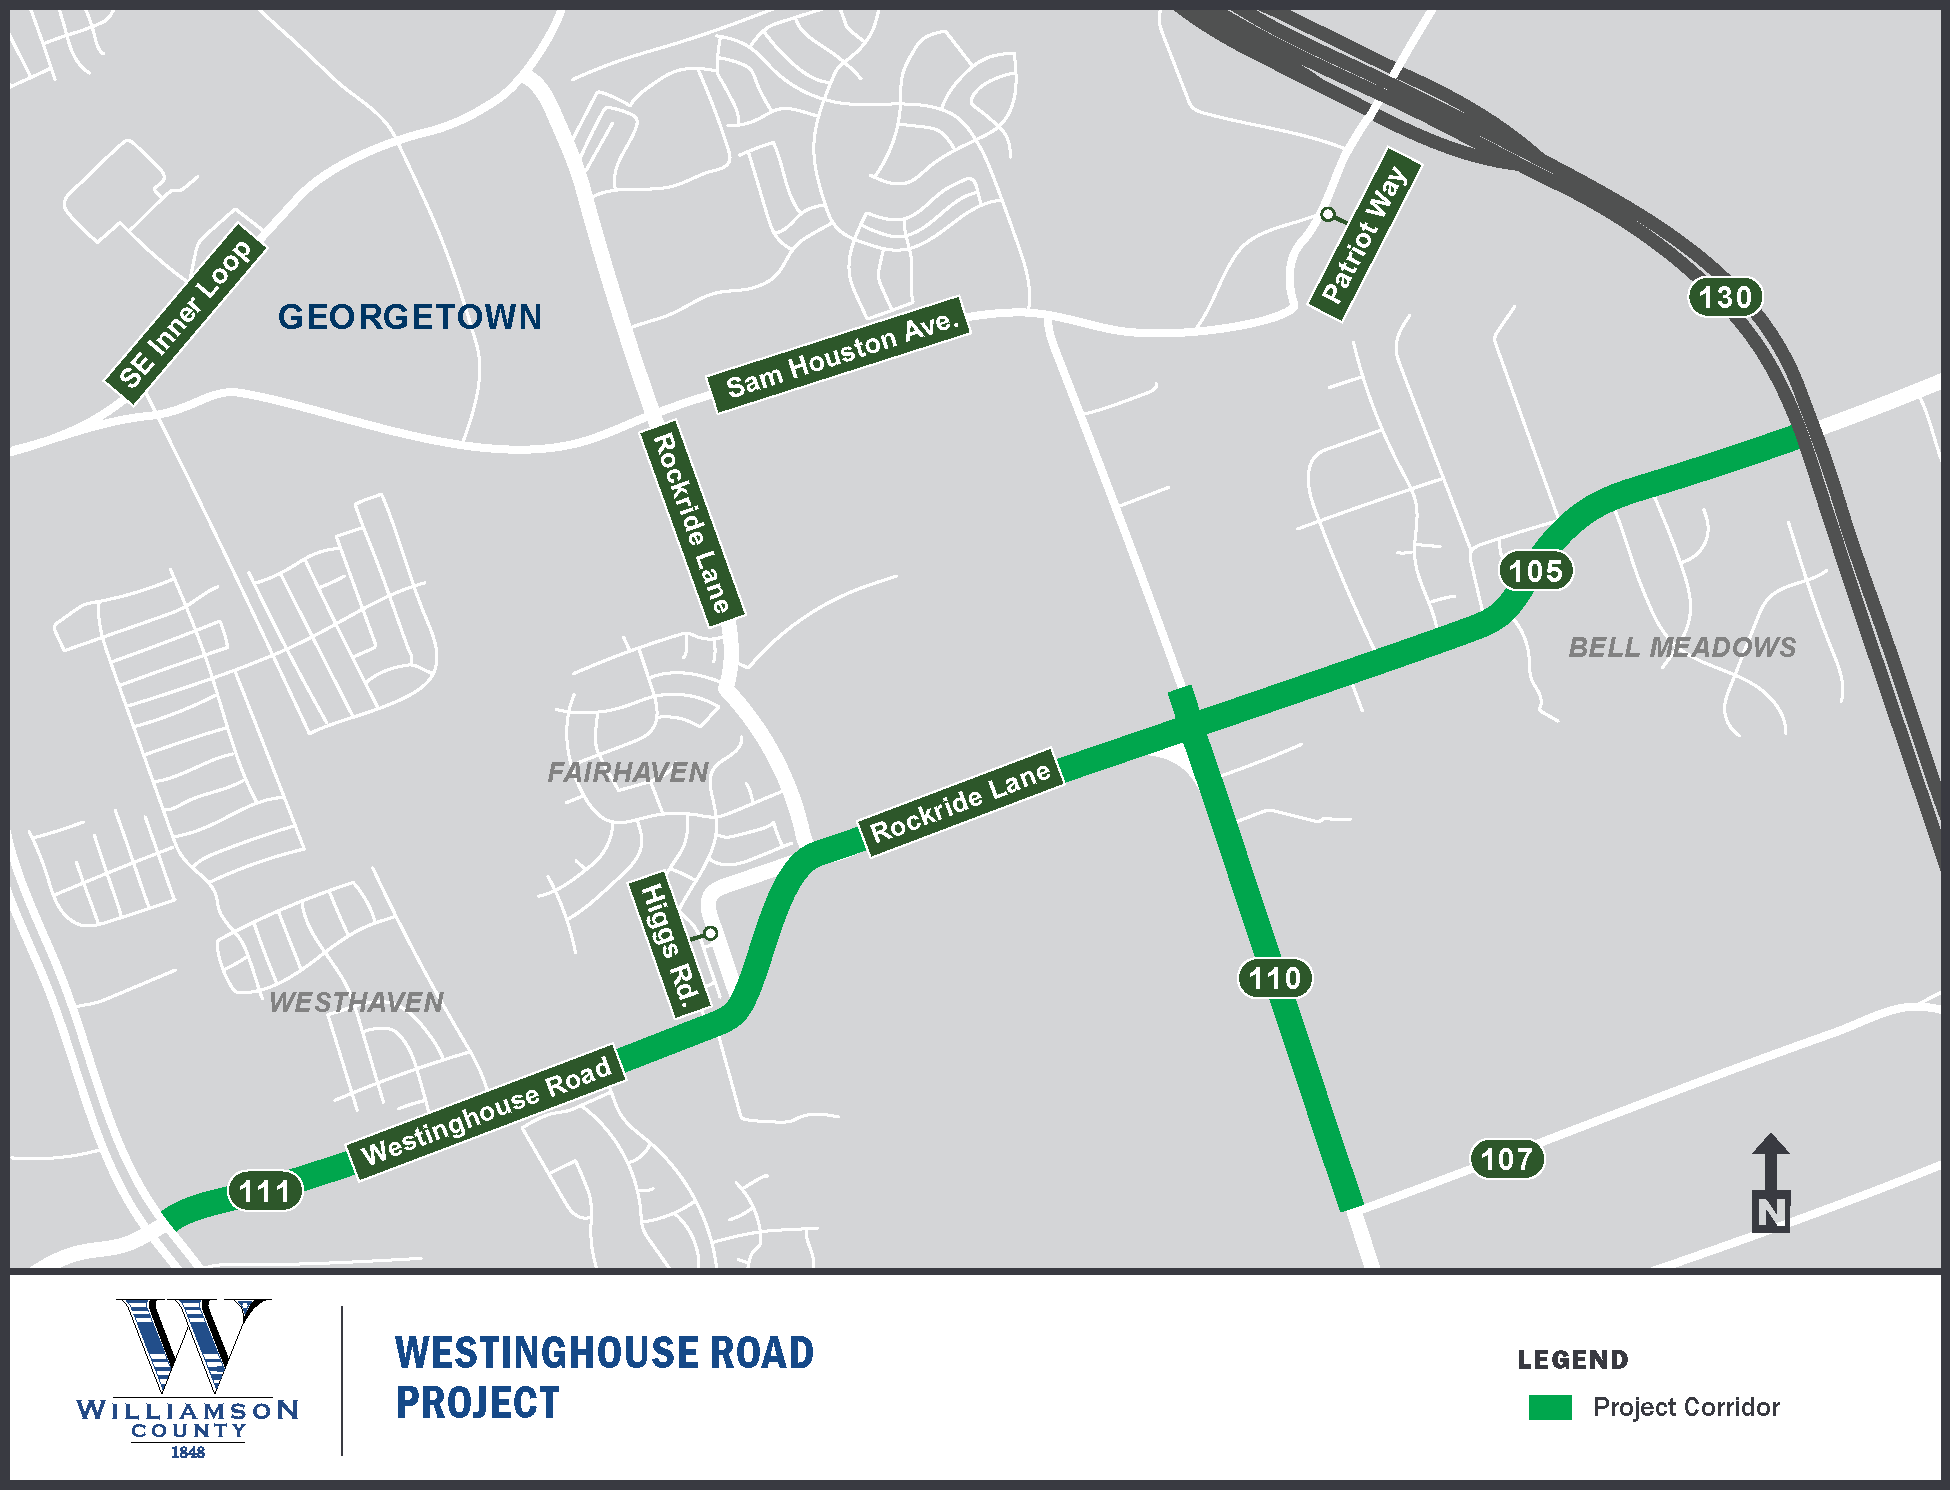 Project Map for Westinghouse Road